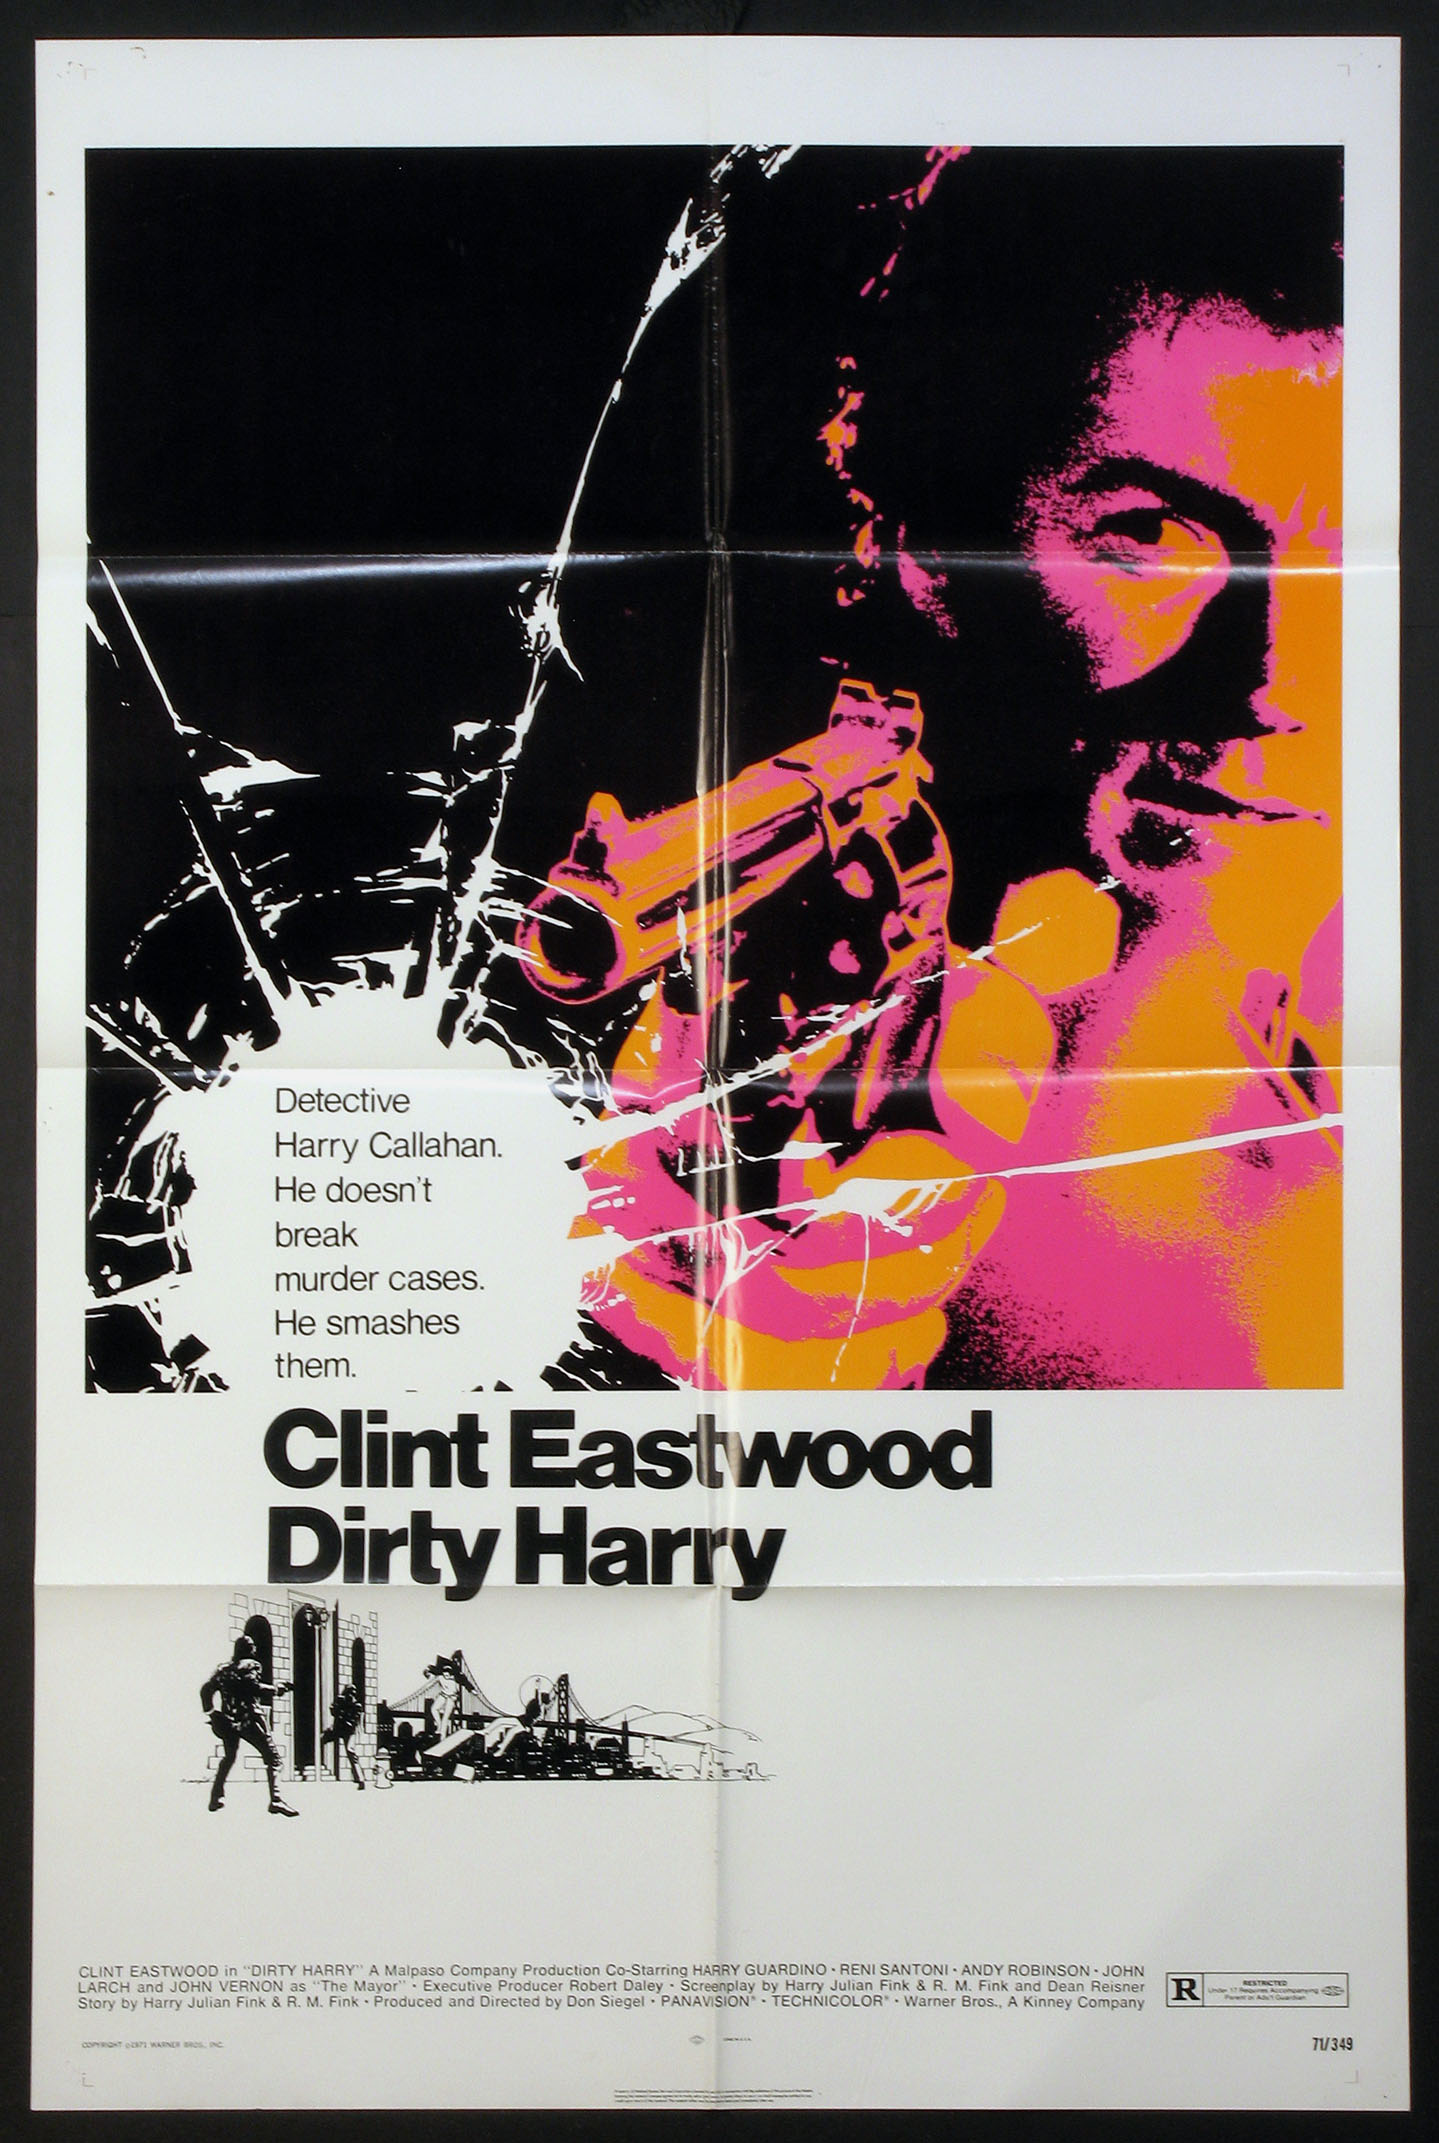 DIRTY HARRY @ FilmPosters.com